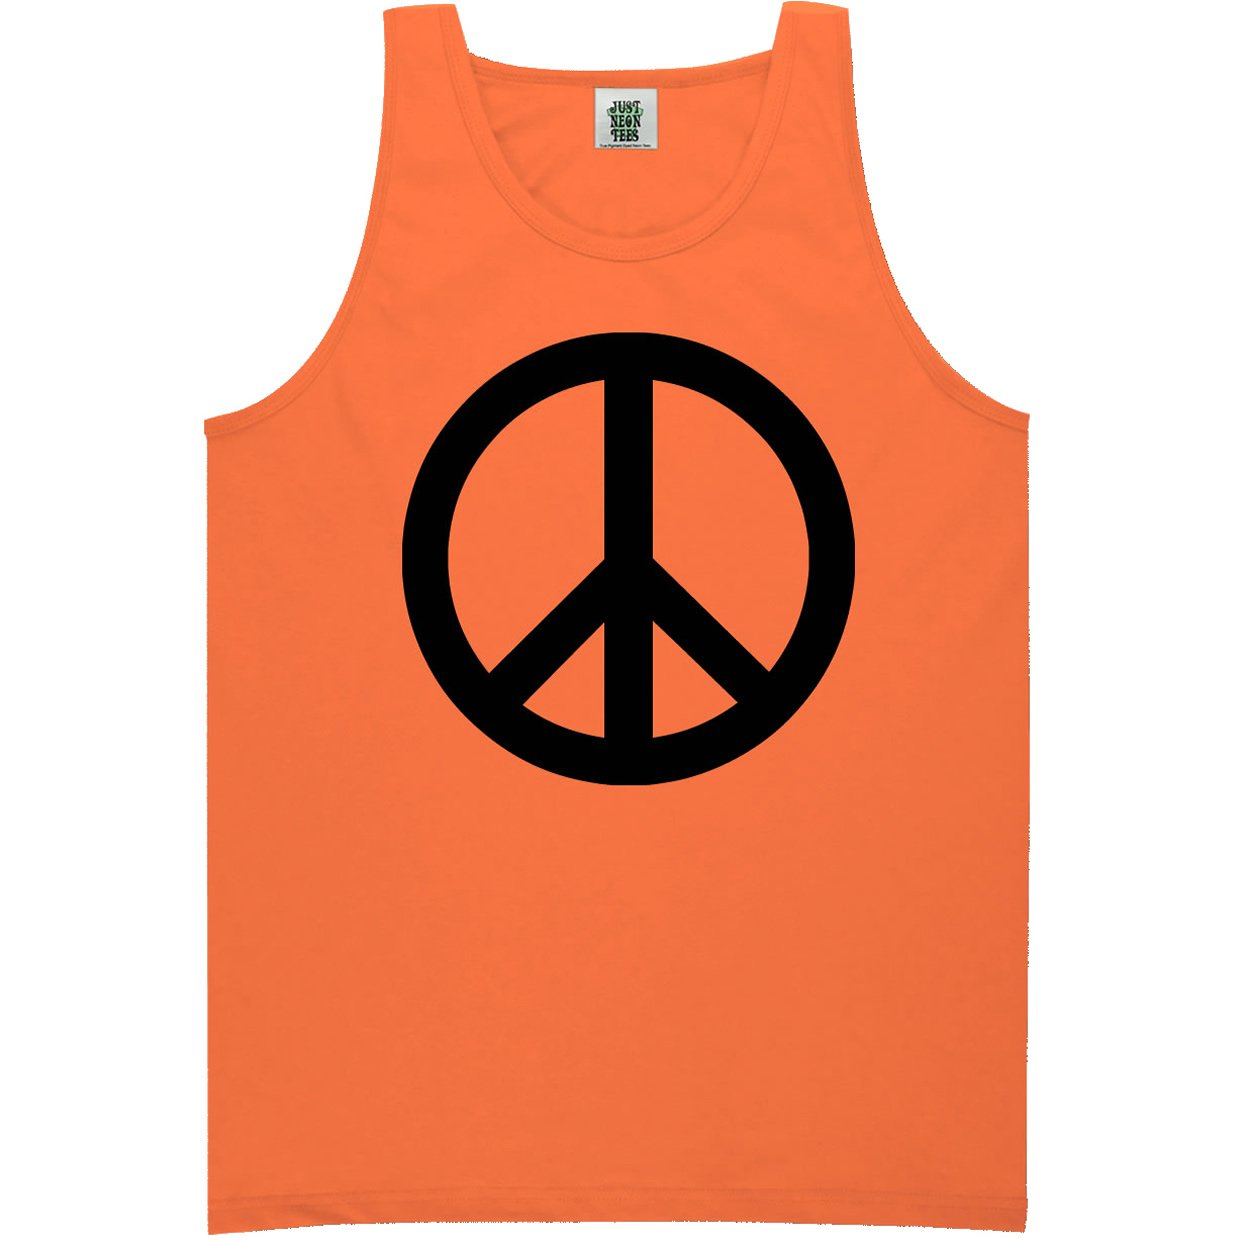 6 Bright Colors ZeroGravitee Youth Peace Sign Bright Neon Tank Top